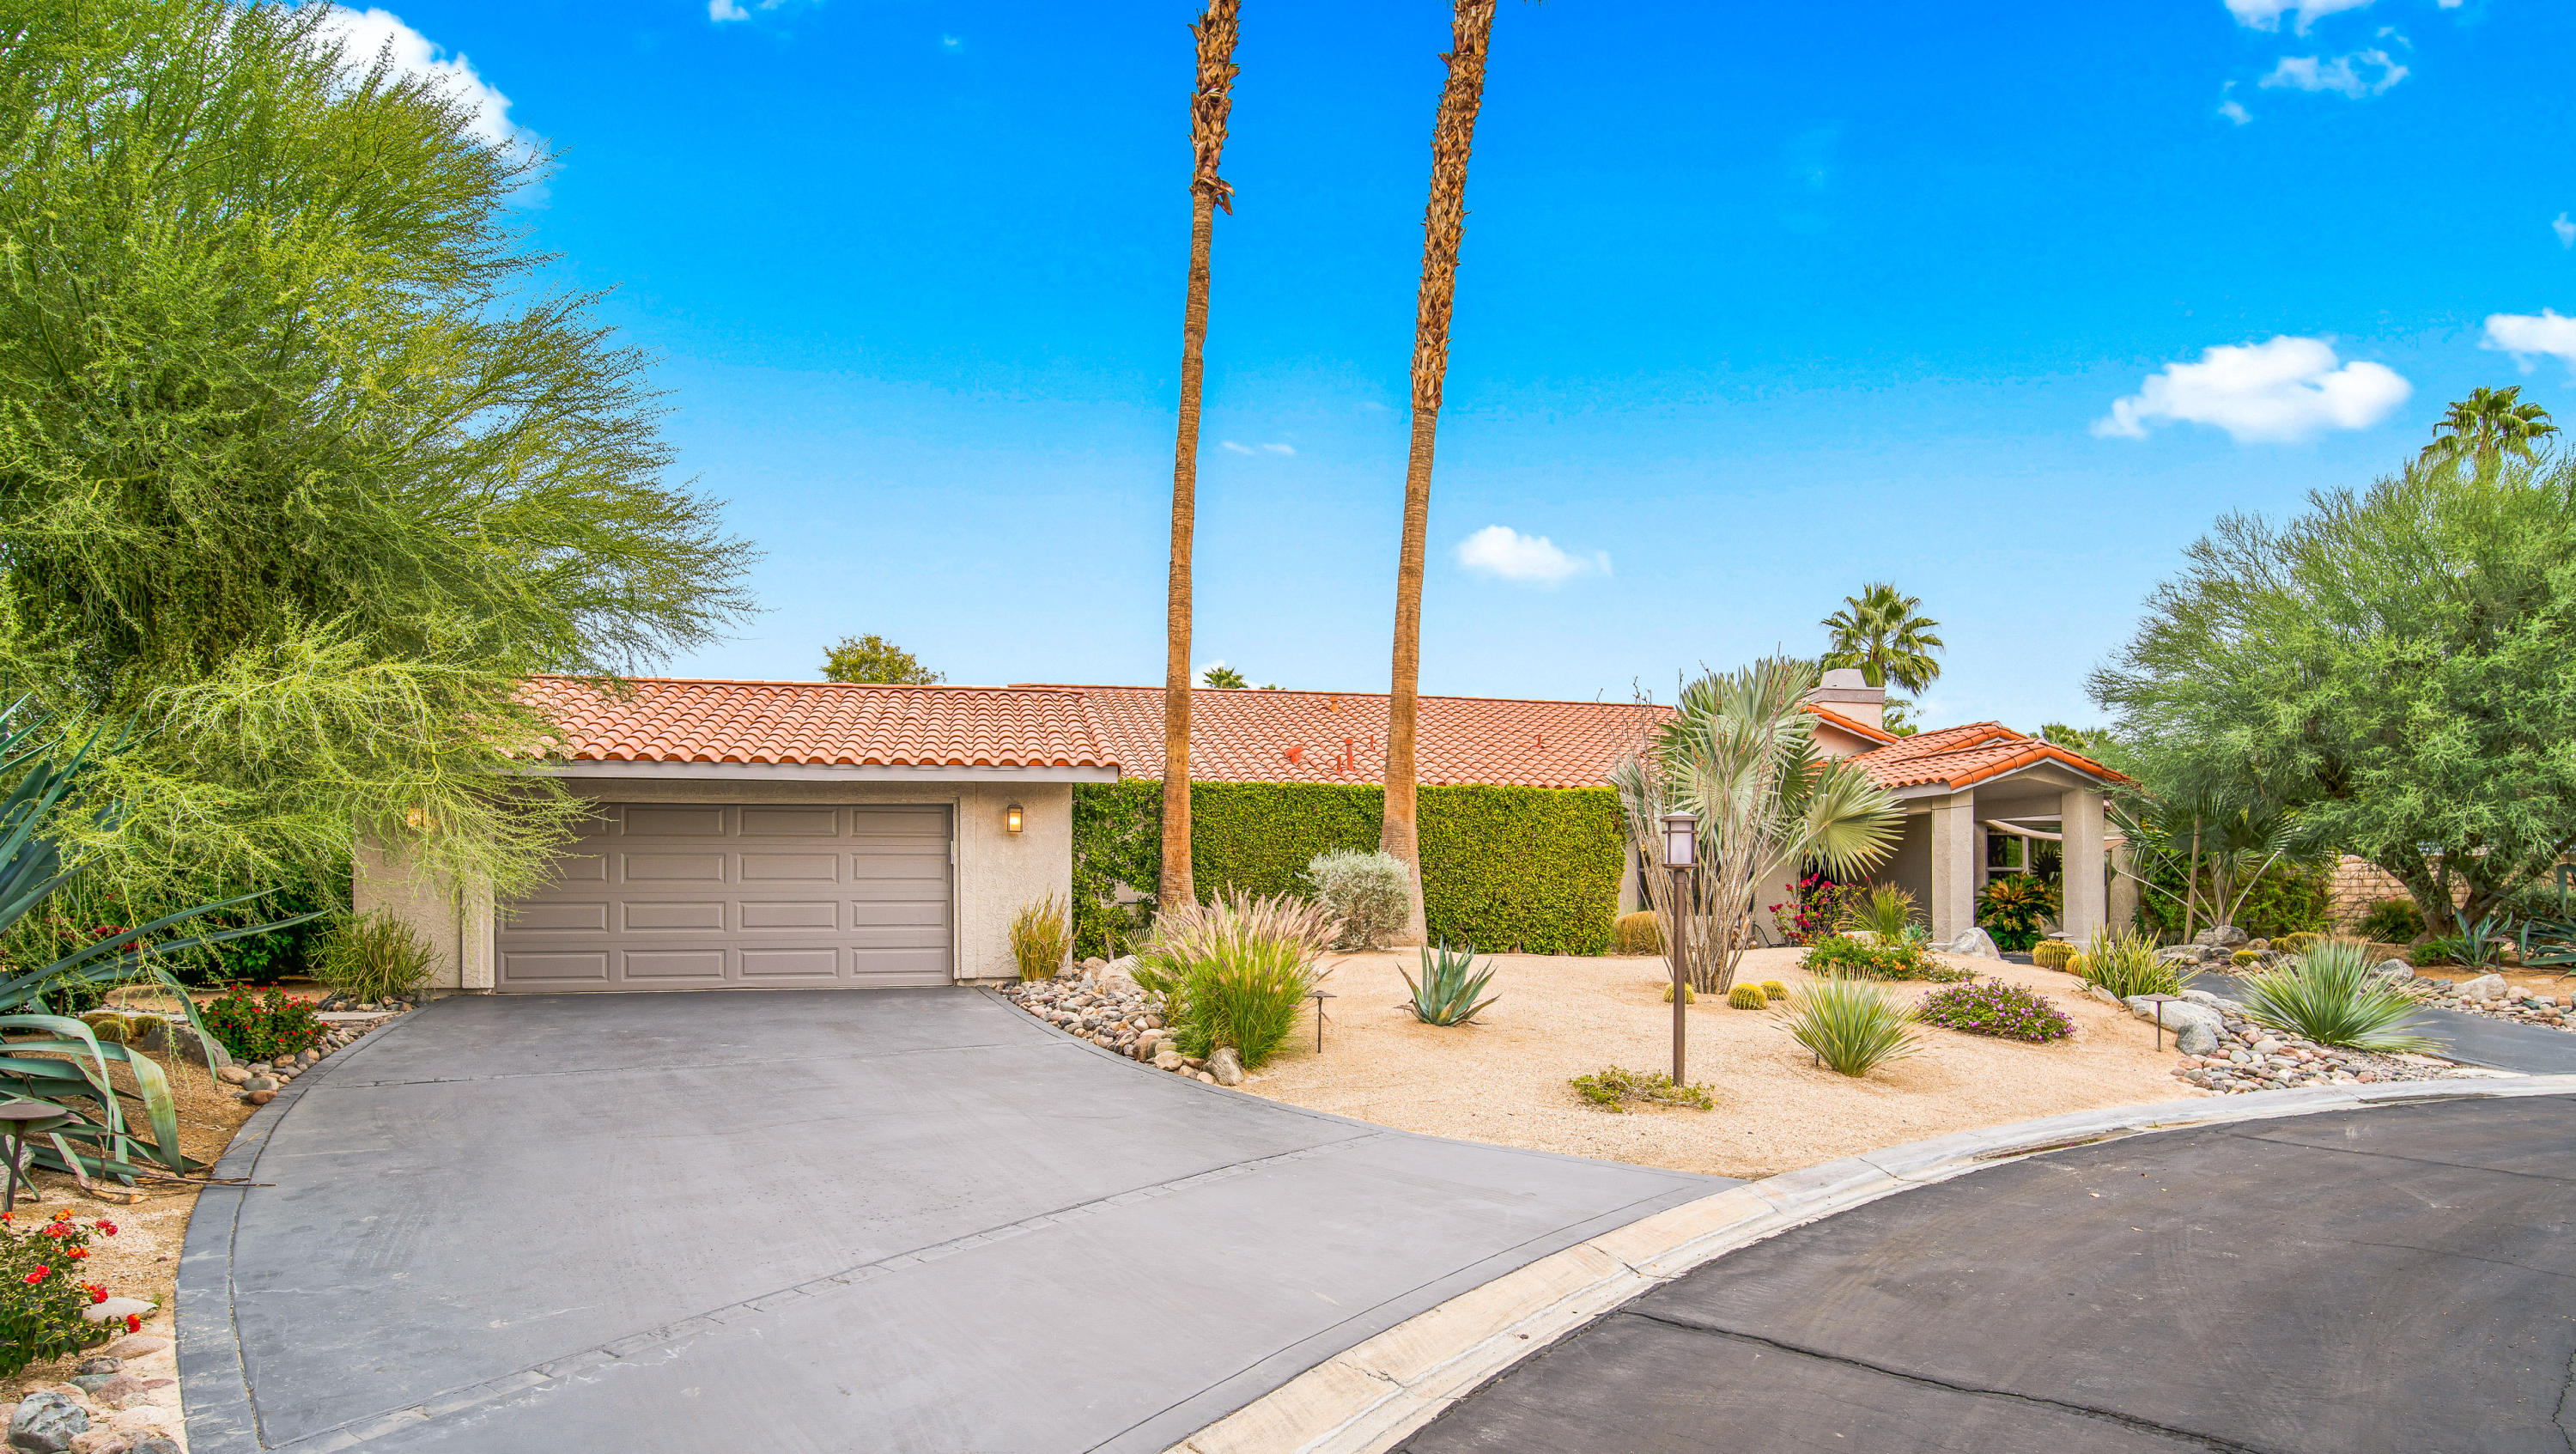 8 Gleneagle Drive, Rancho Mirage, California 92270, 3 Bedrooms Bedrooms, ,4 BathroomsBathrooms,Residential,For Sale,8 Gleneagle Drive,219035383